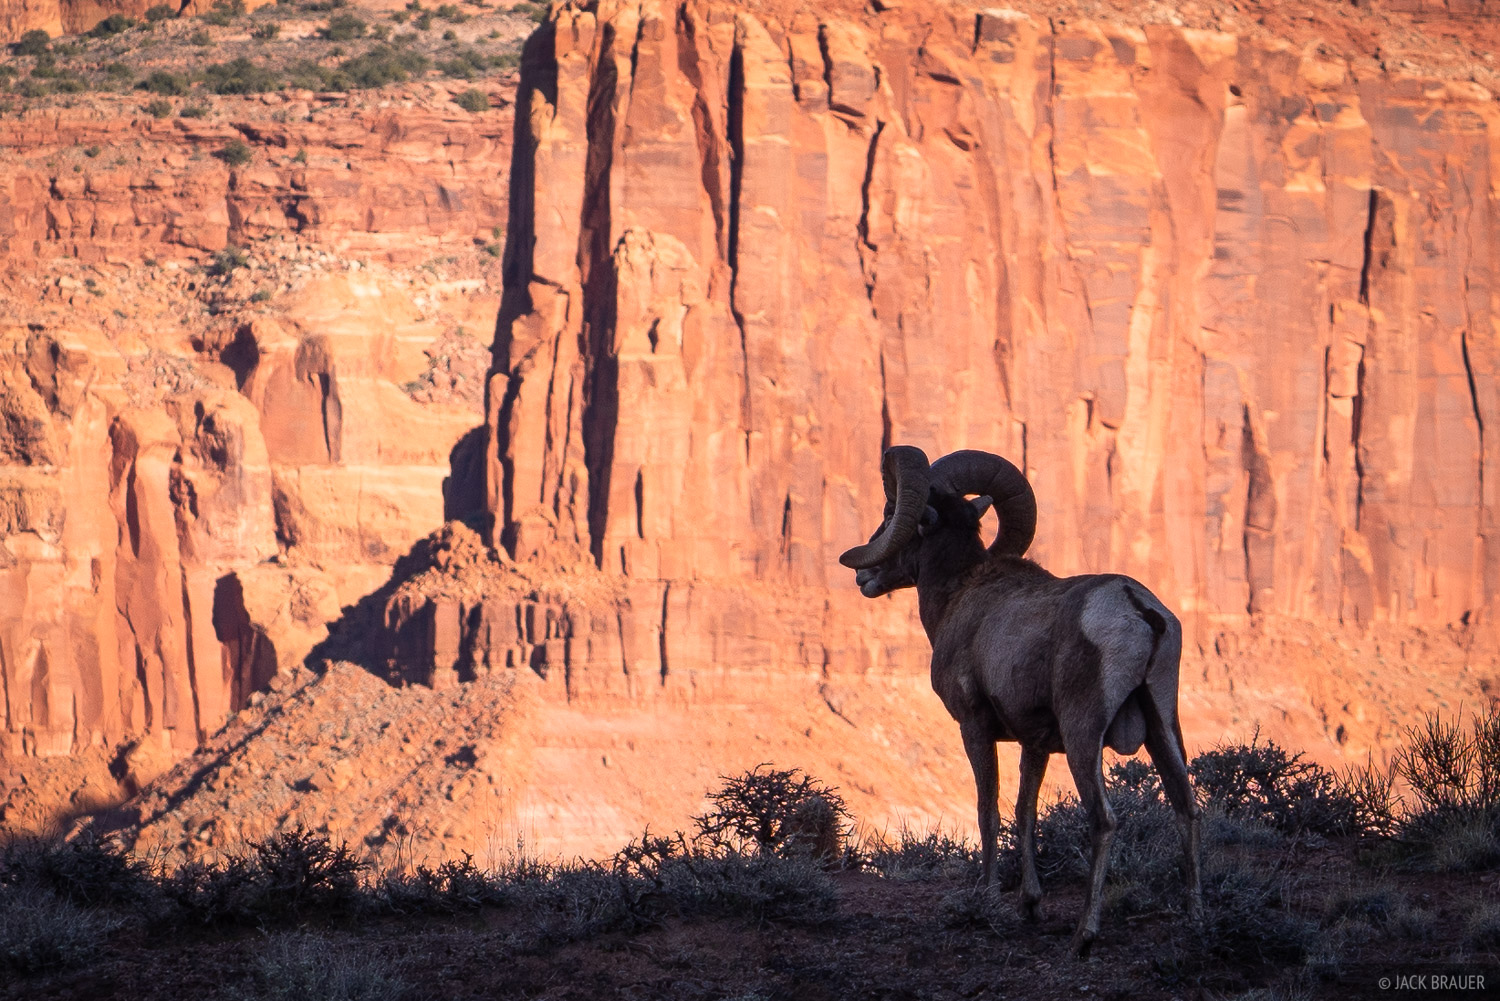 A bighorn sheep surveys the view in red rock country.